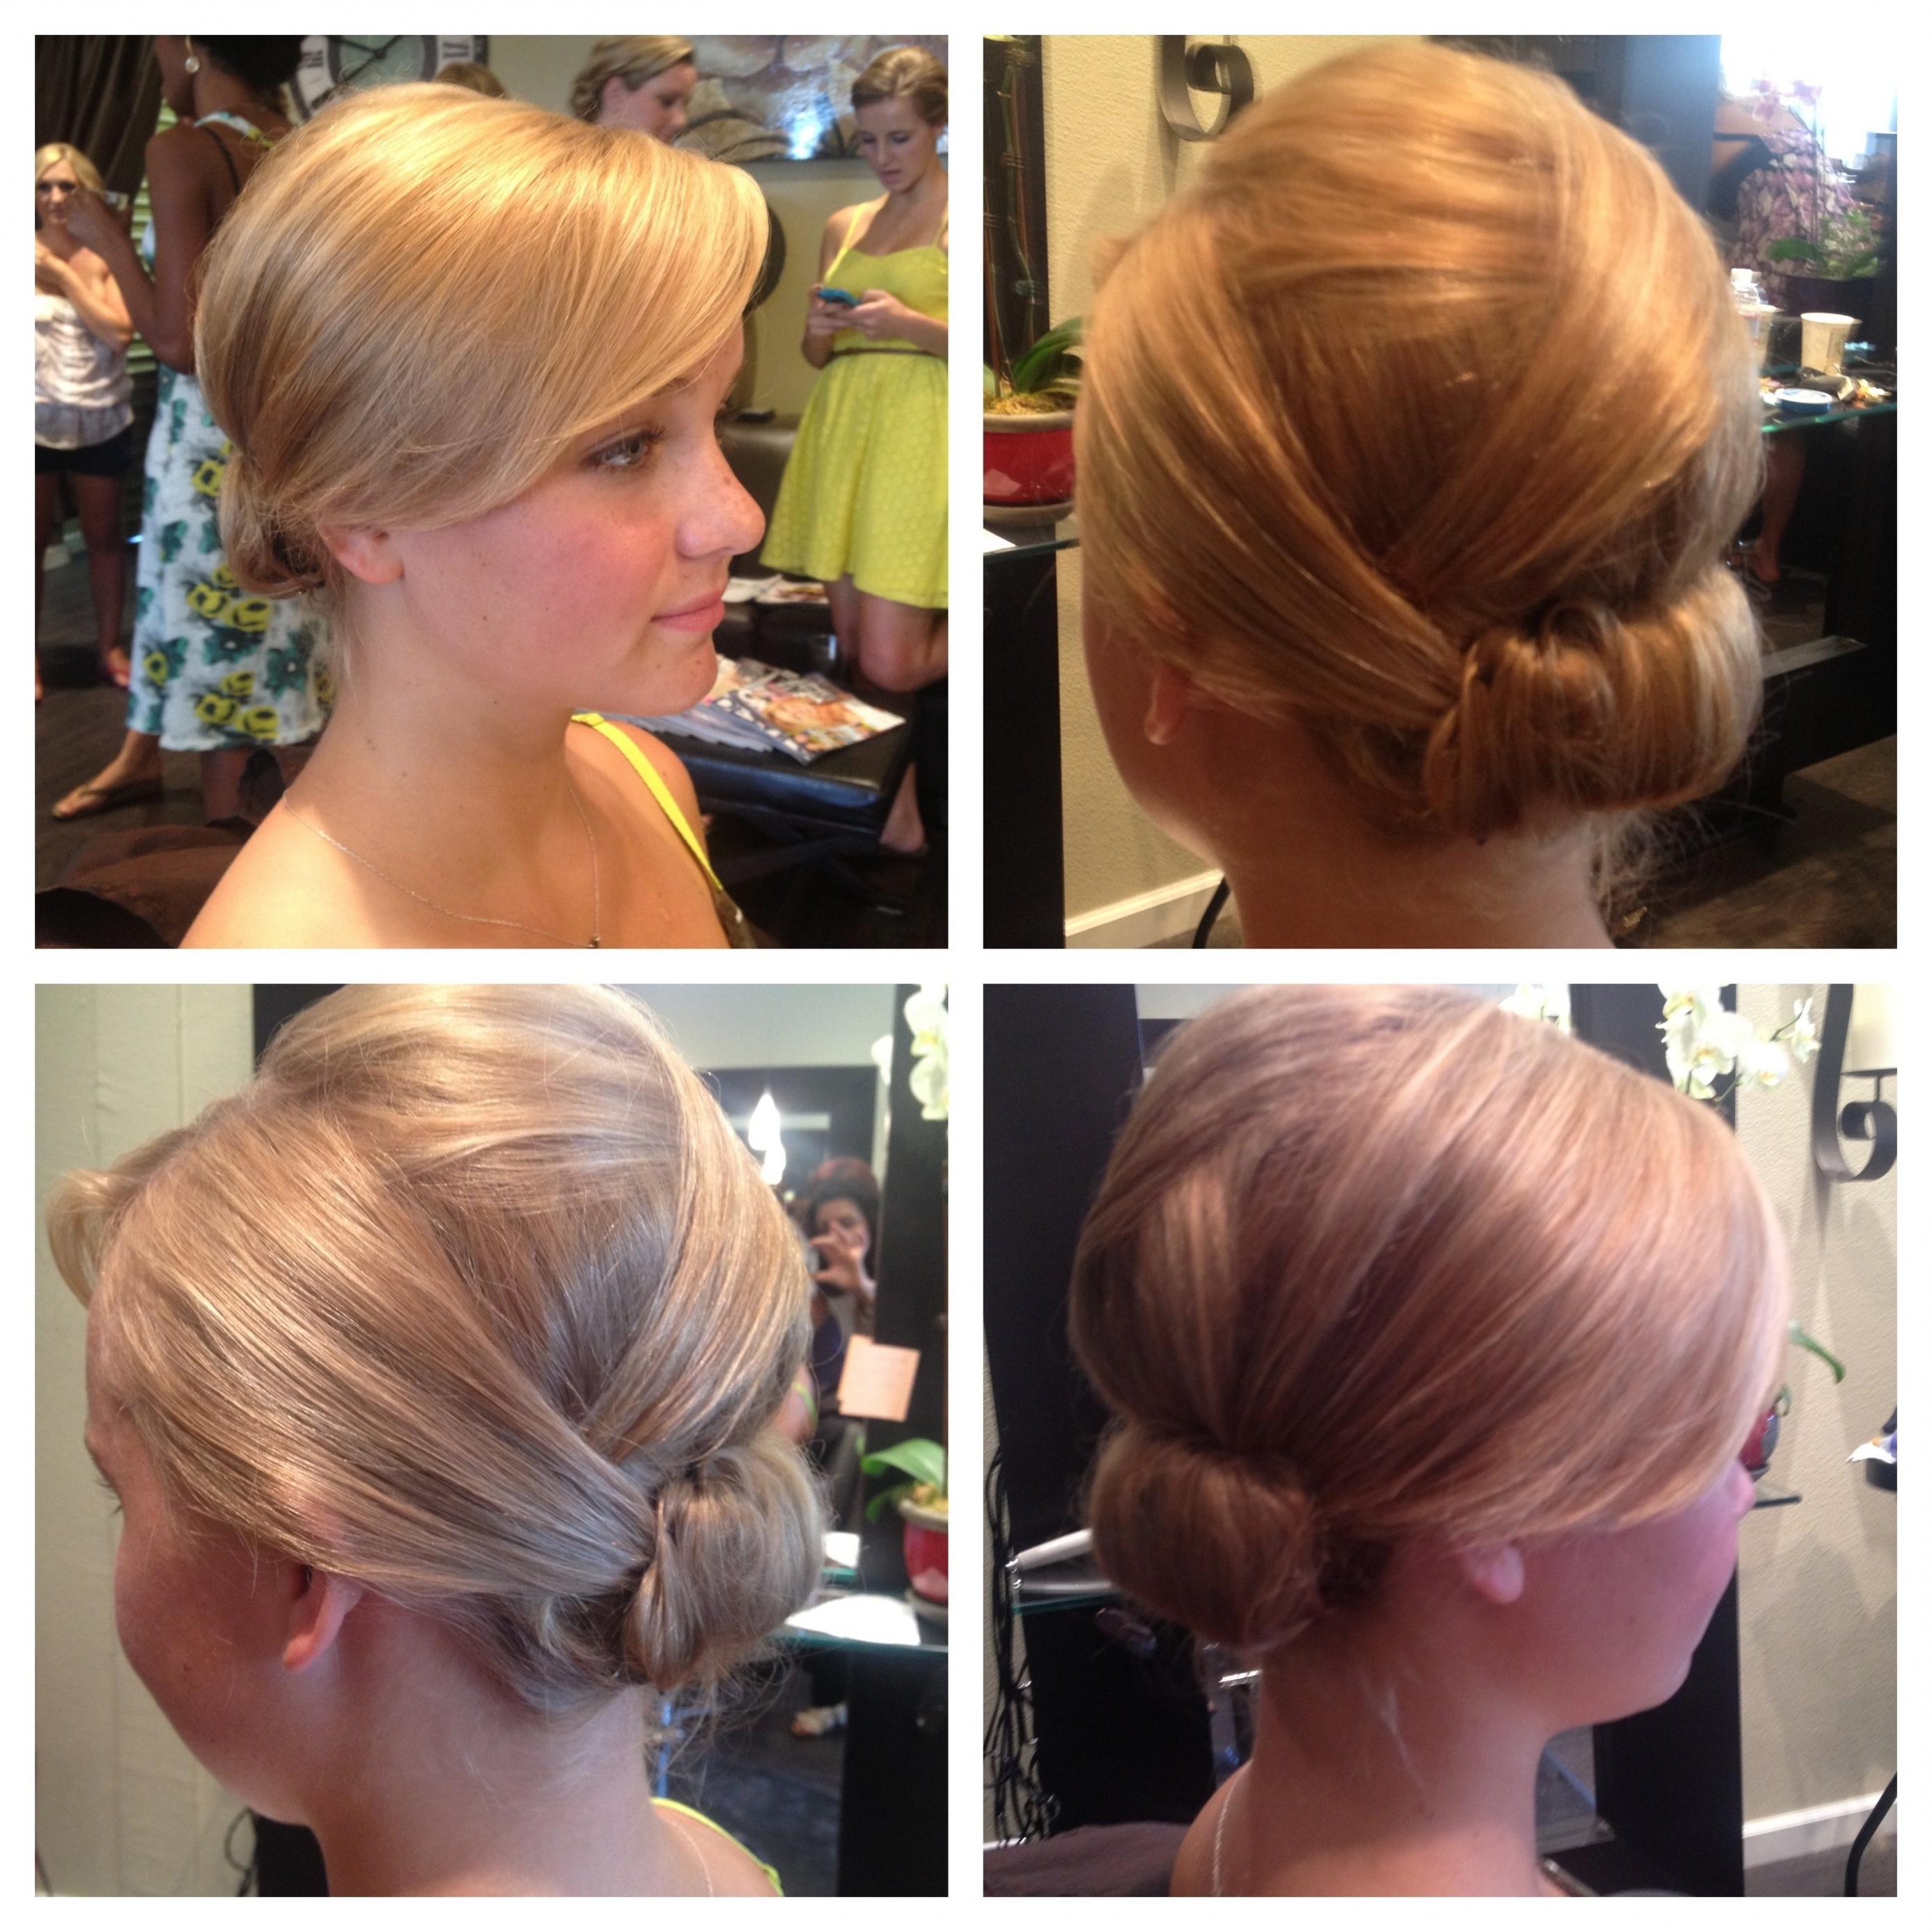 Fine Hair Updo Bridesmaids Wedding Hair Pinterest Awesome | Best Within Bridesmaid Updo Hairstyles For Thin Hair (View 13 of 15)